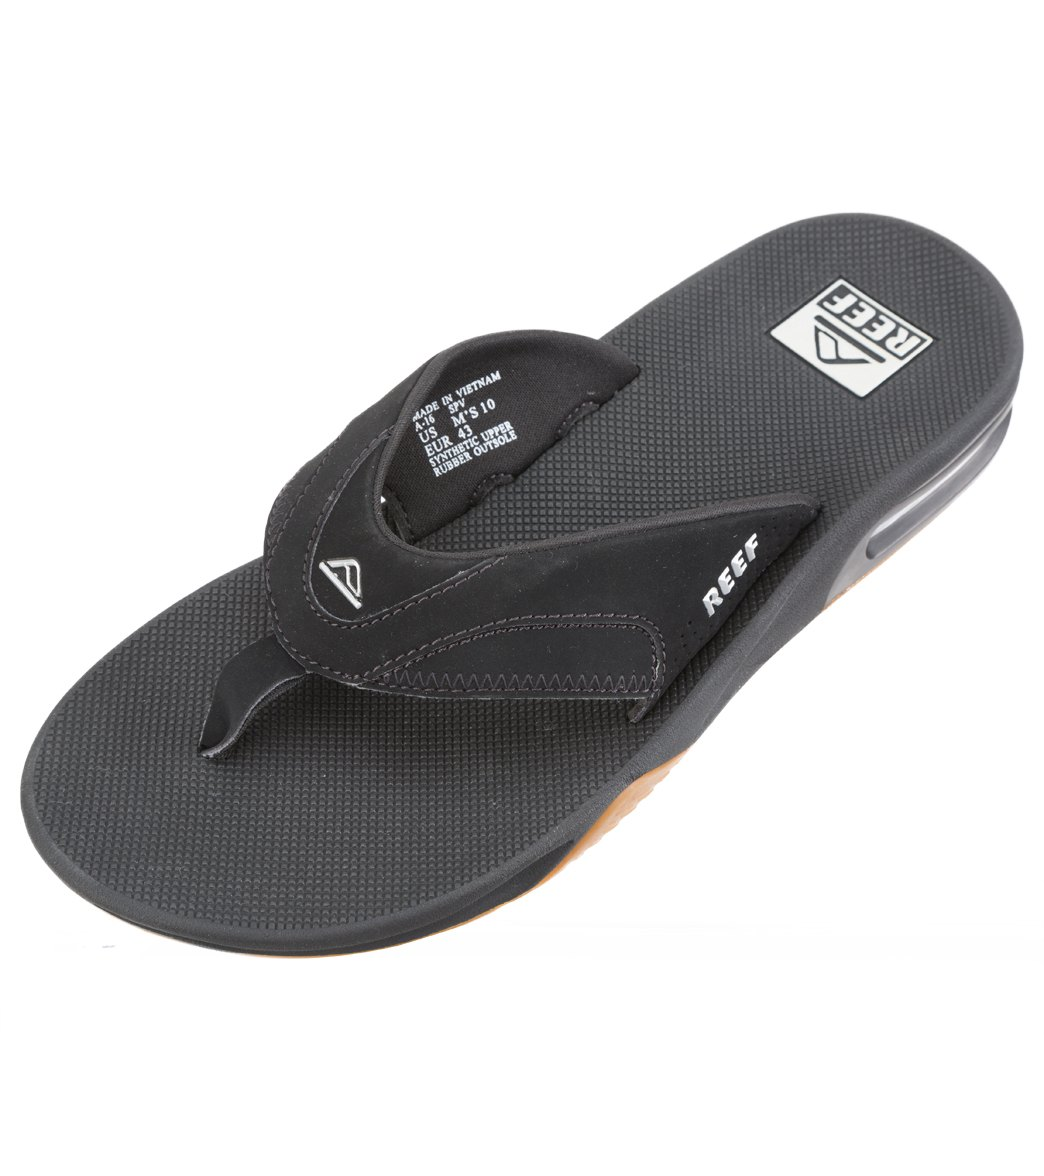 623d379f7cf91 Reef Men s Fanning Flip Flop at SwimOutlet.com - Free Shipping